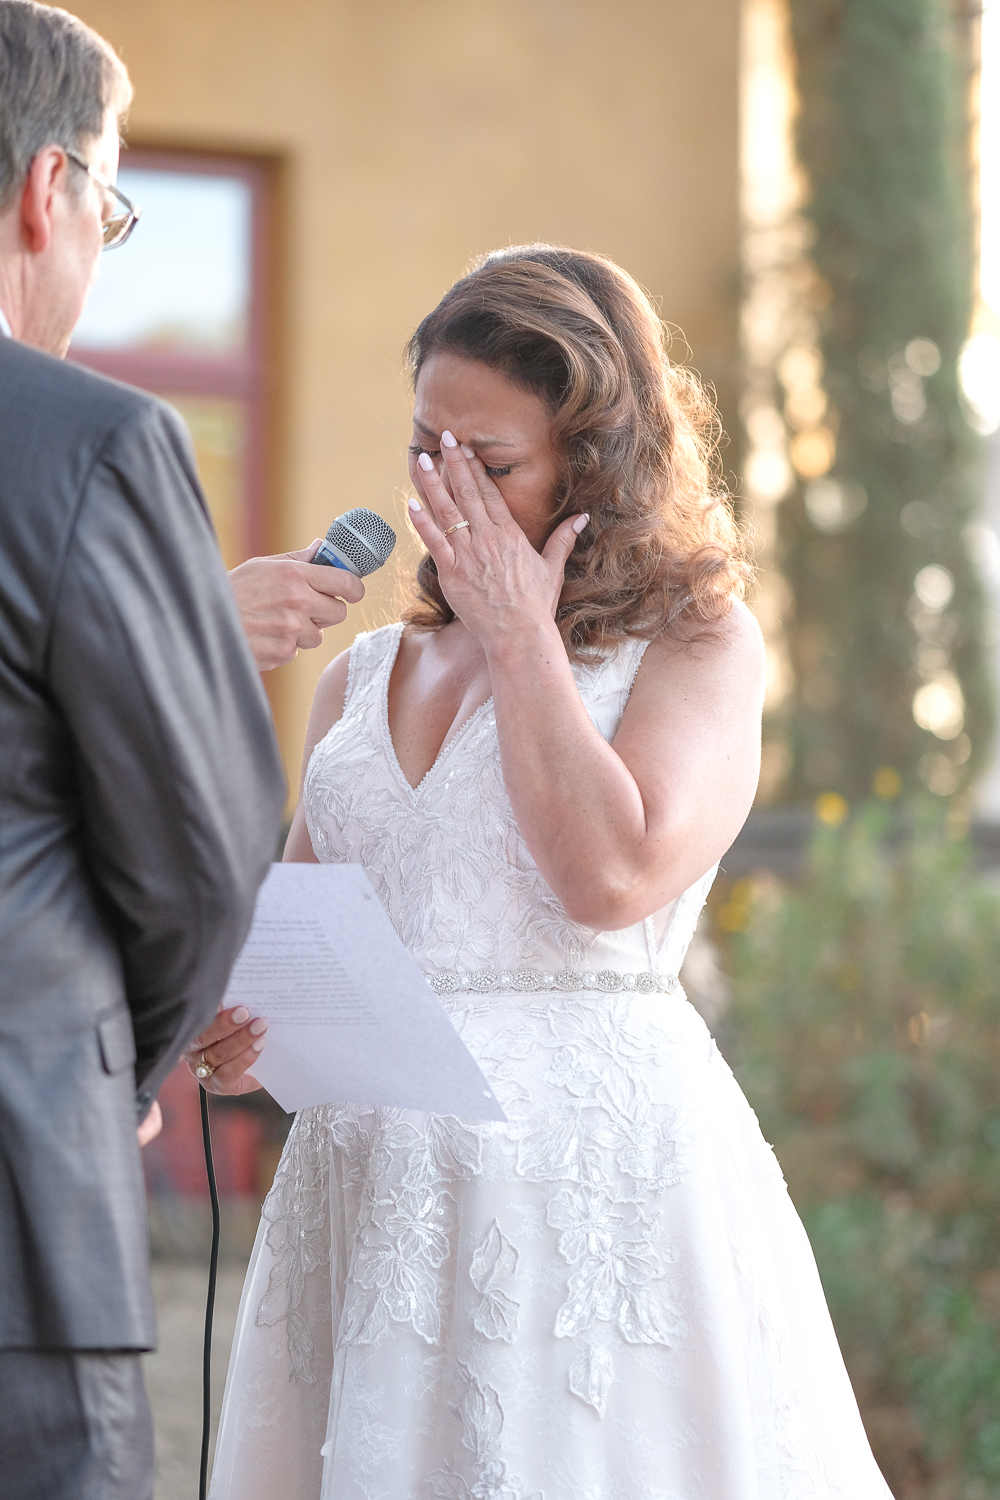 William_J_Simpson_wedding_photographer_WJSG1456.jpg